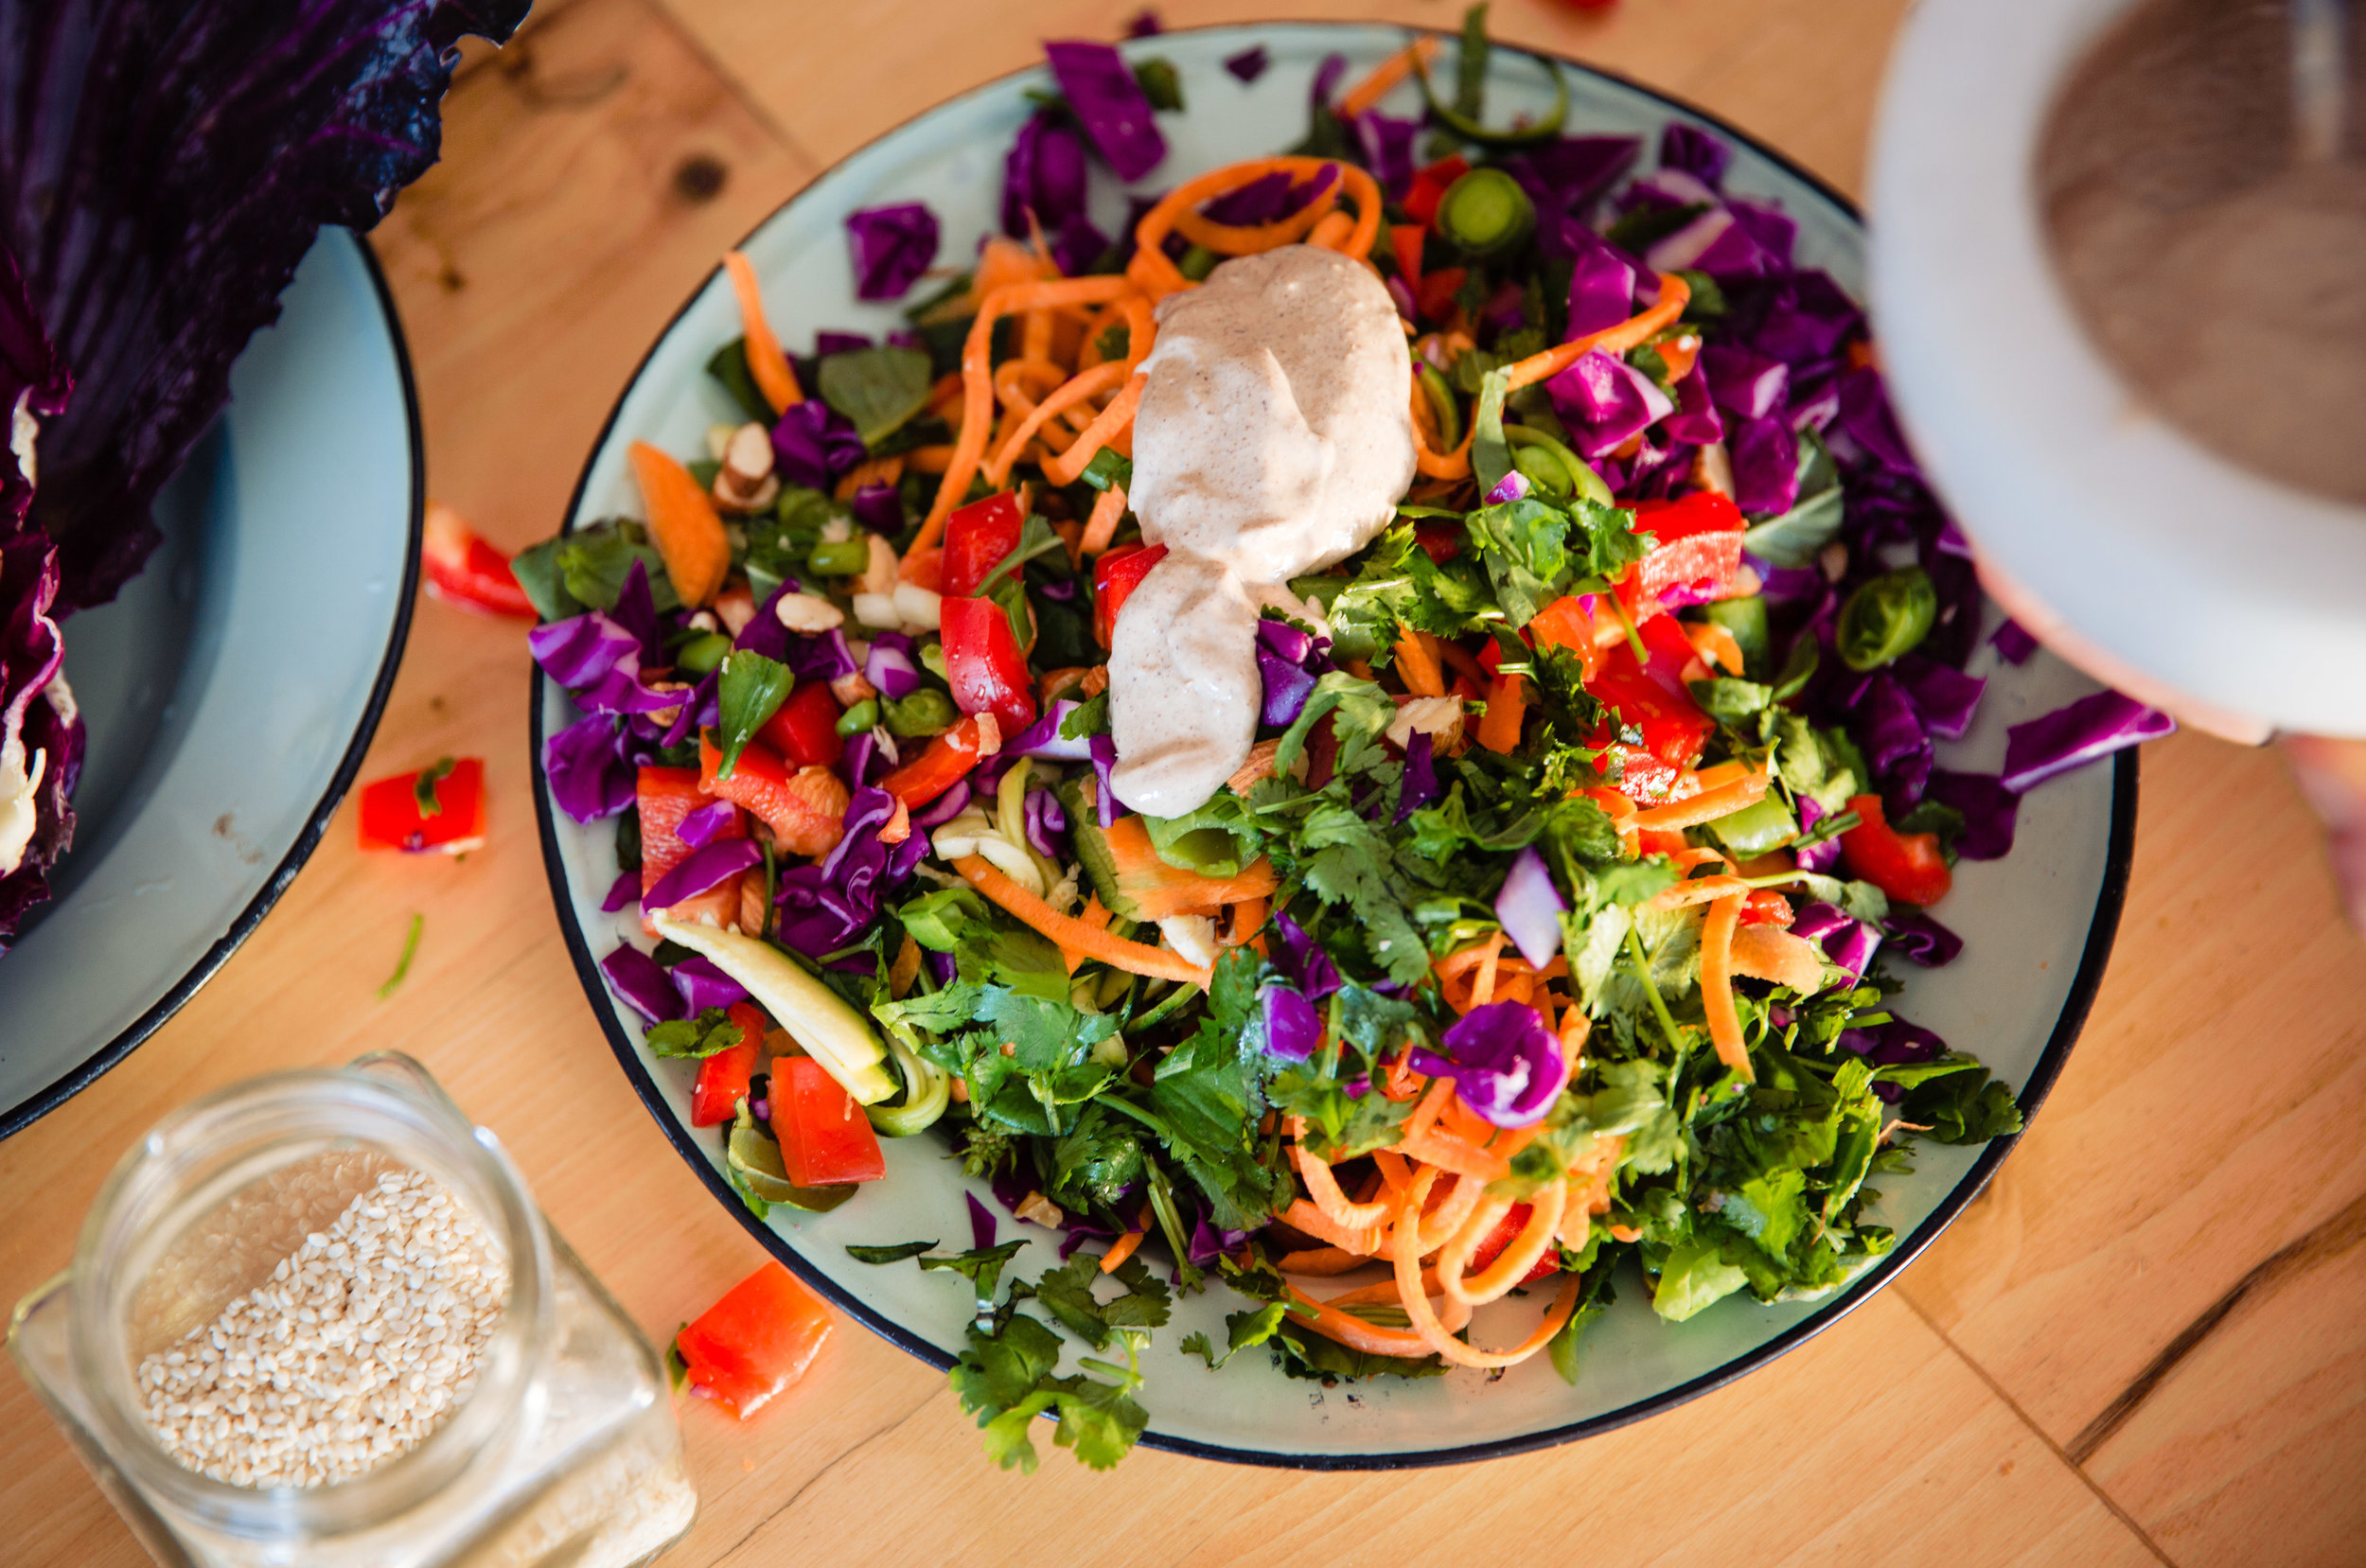 """Damn salad, you're looking good. Let me come on over"", said the nut butter sauce"